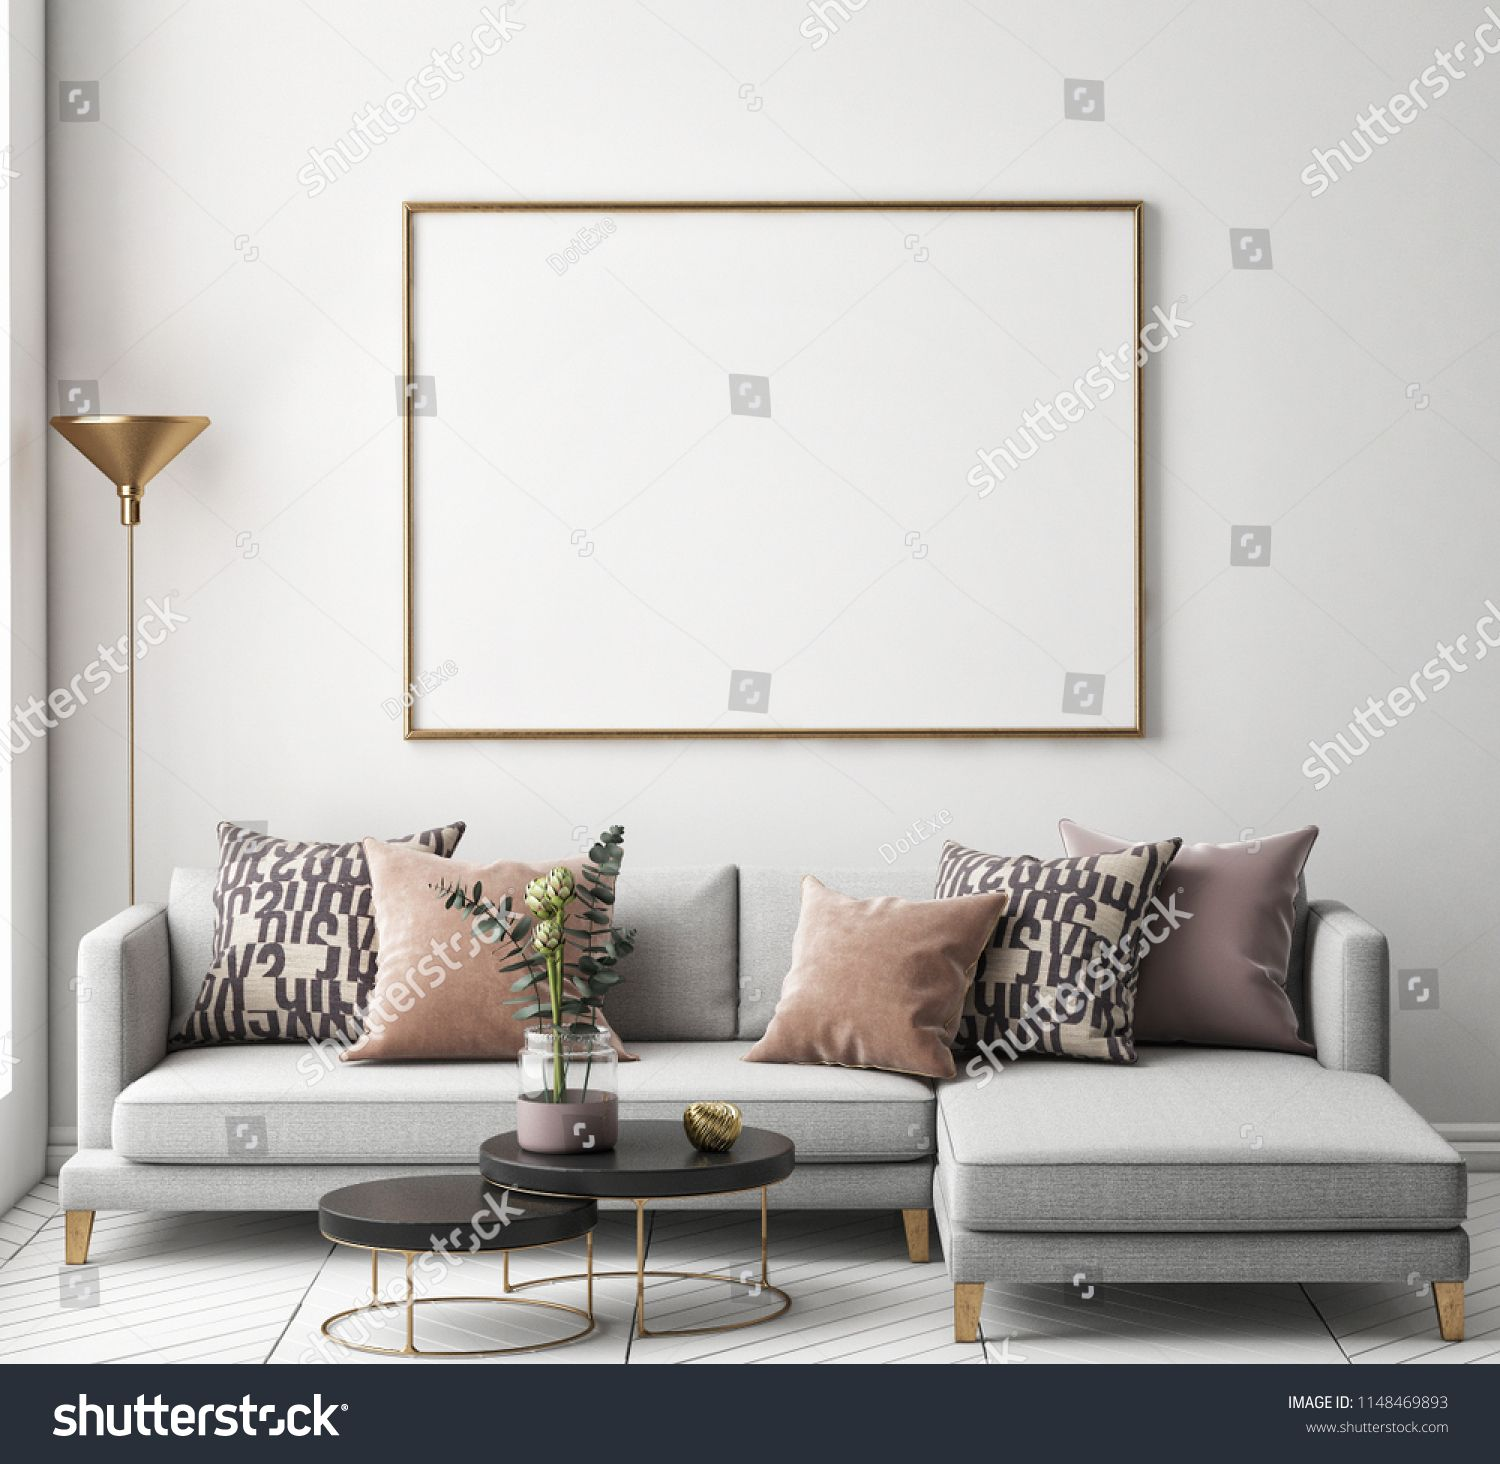 Pin On Architecture Photos Montage White living room background